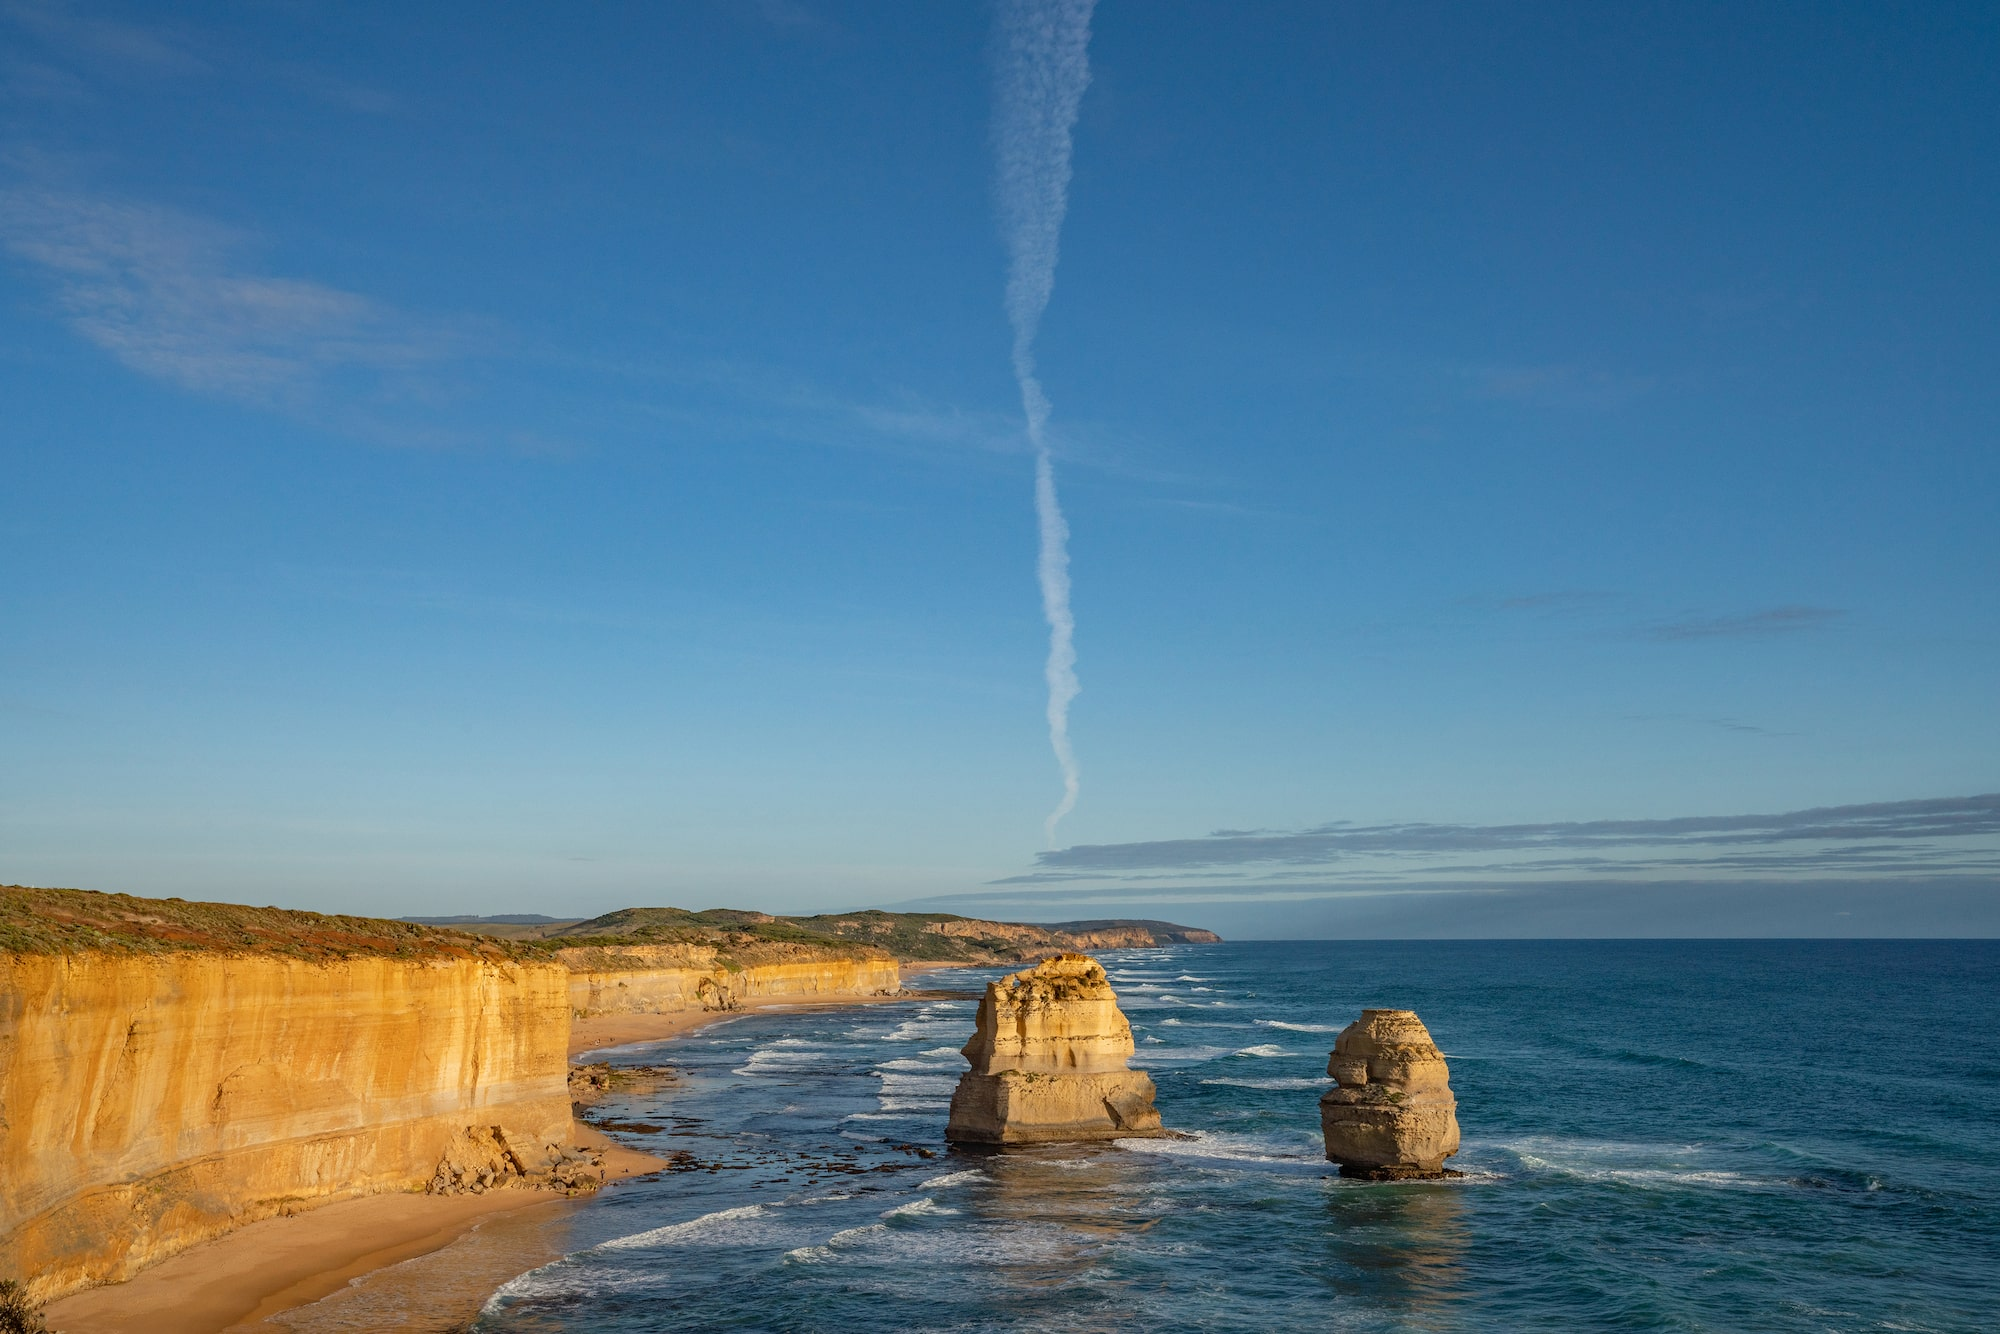 Blue skies of the Twelve Apostles